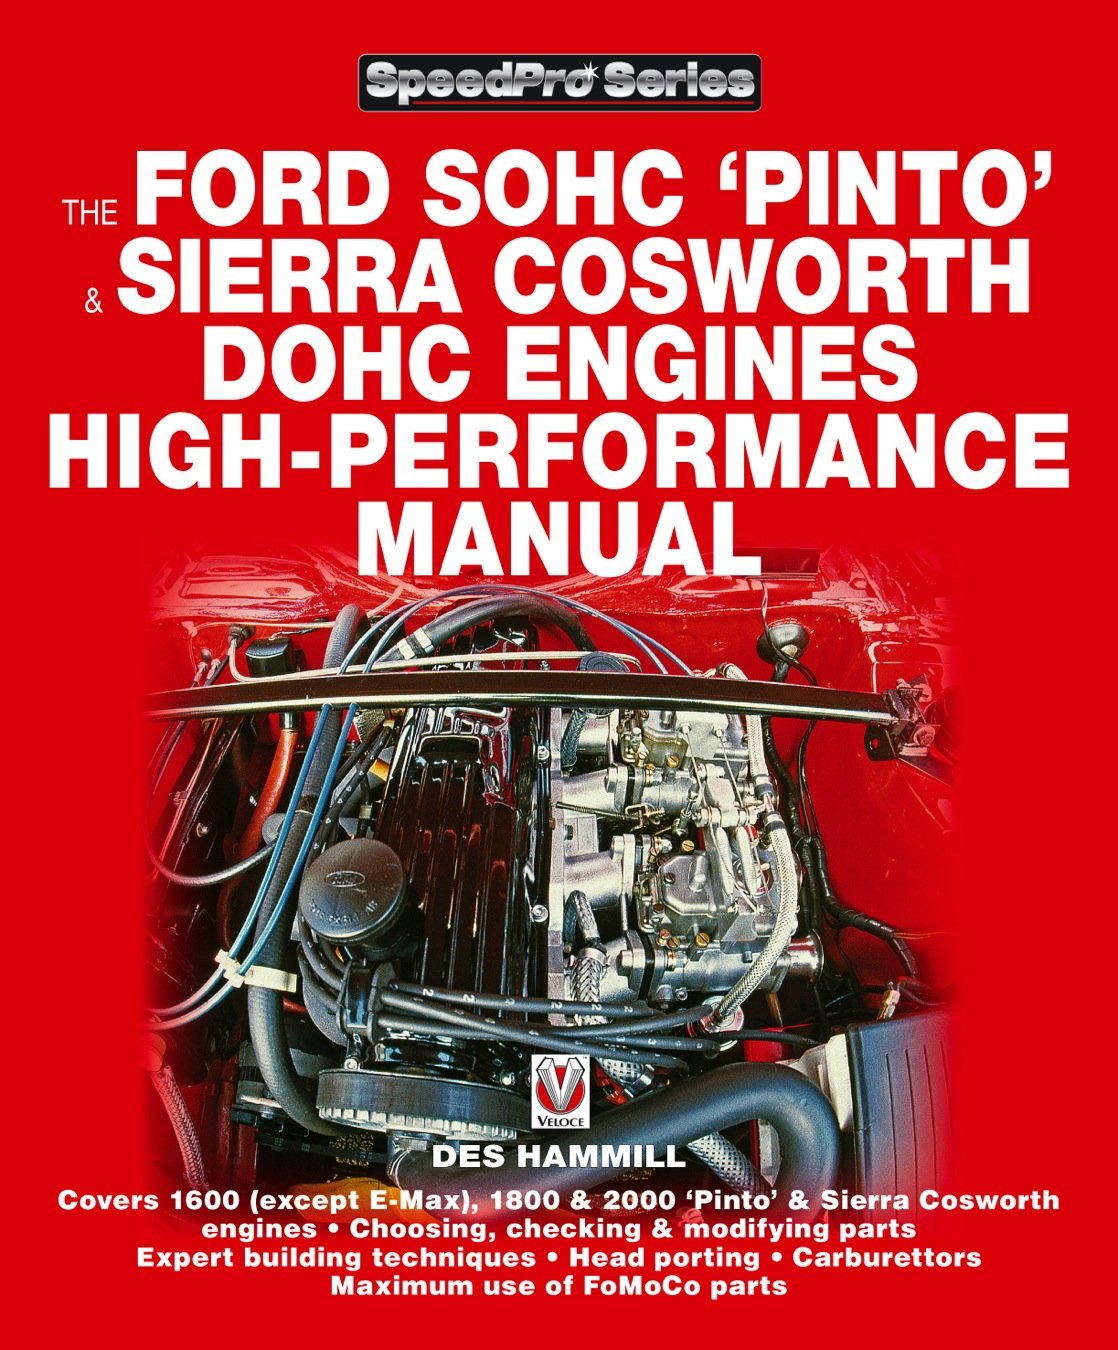 The Ford Sohc 'Pinto' & Sierra Cosworth Dohc Engines High